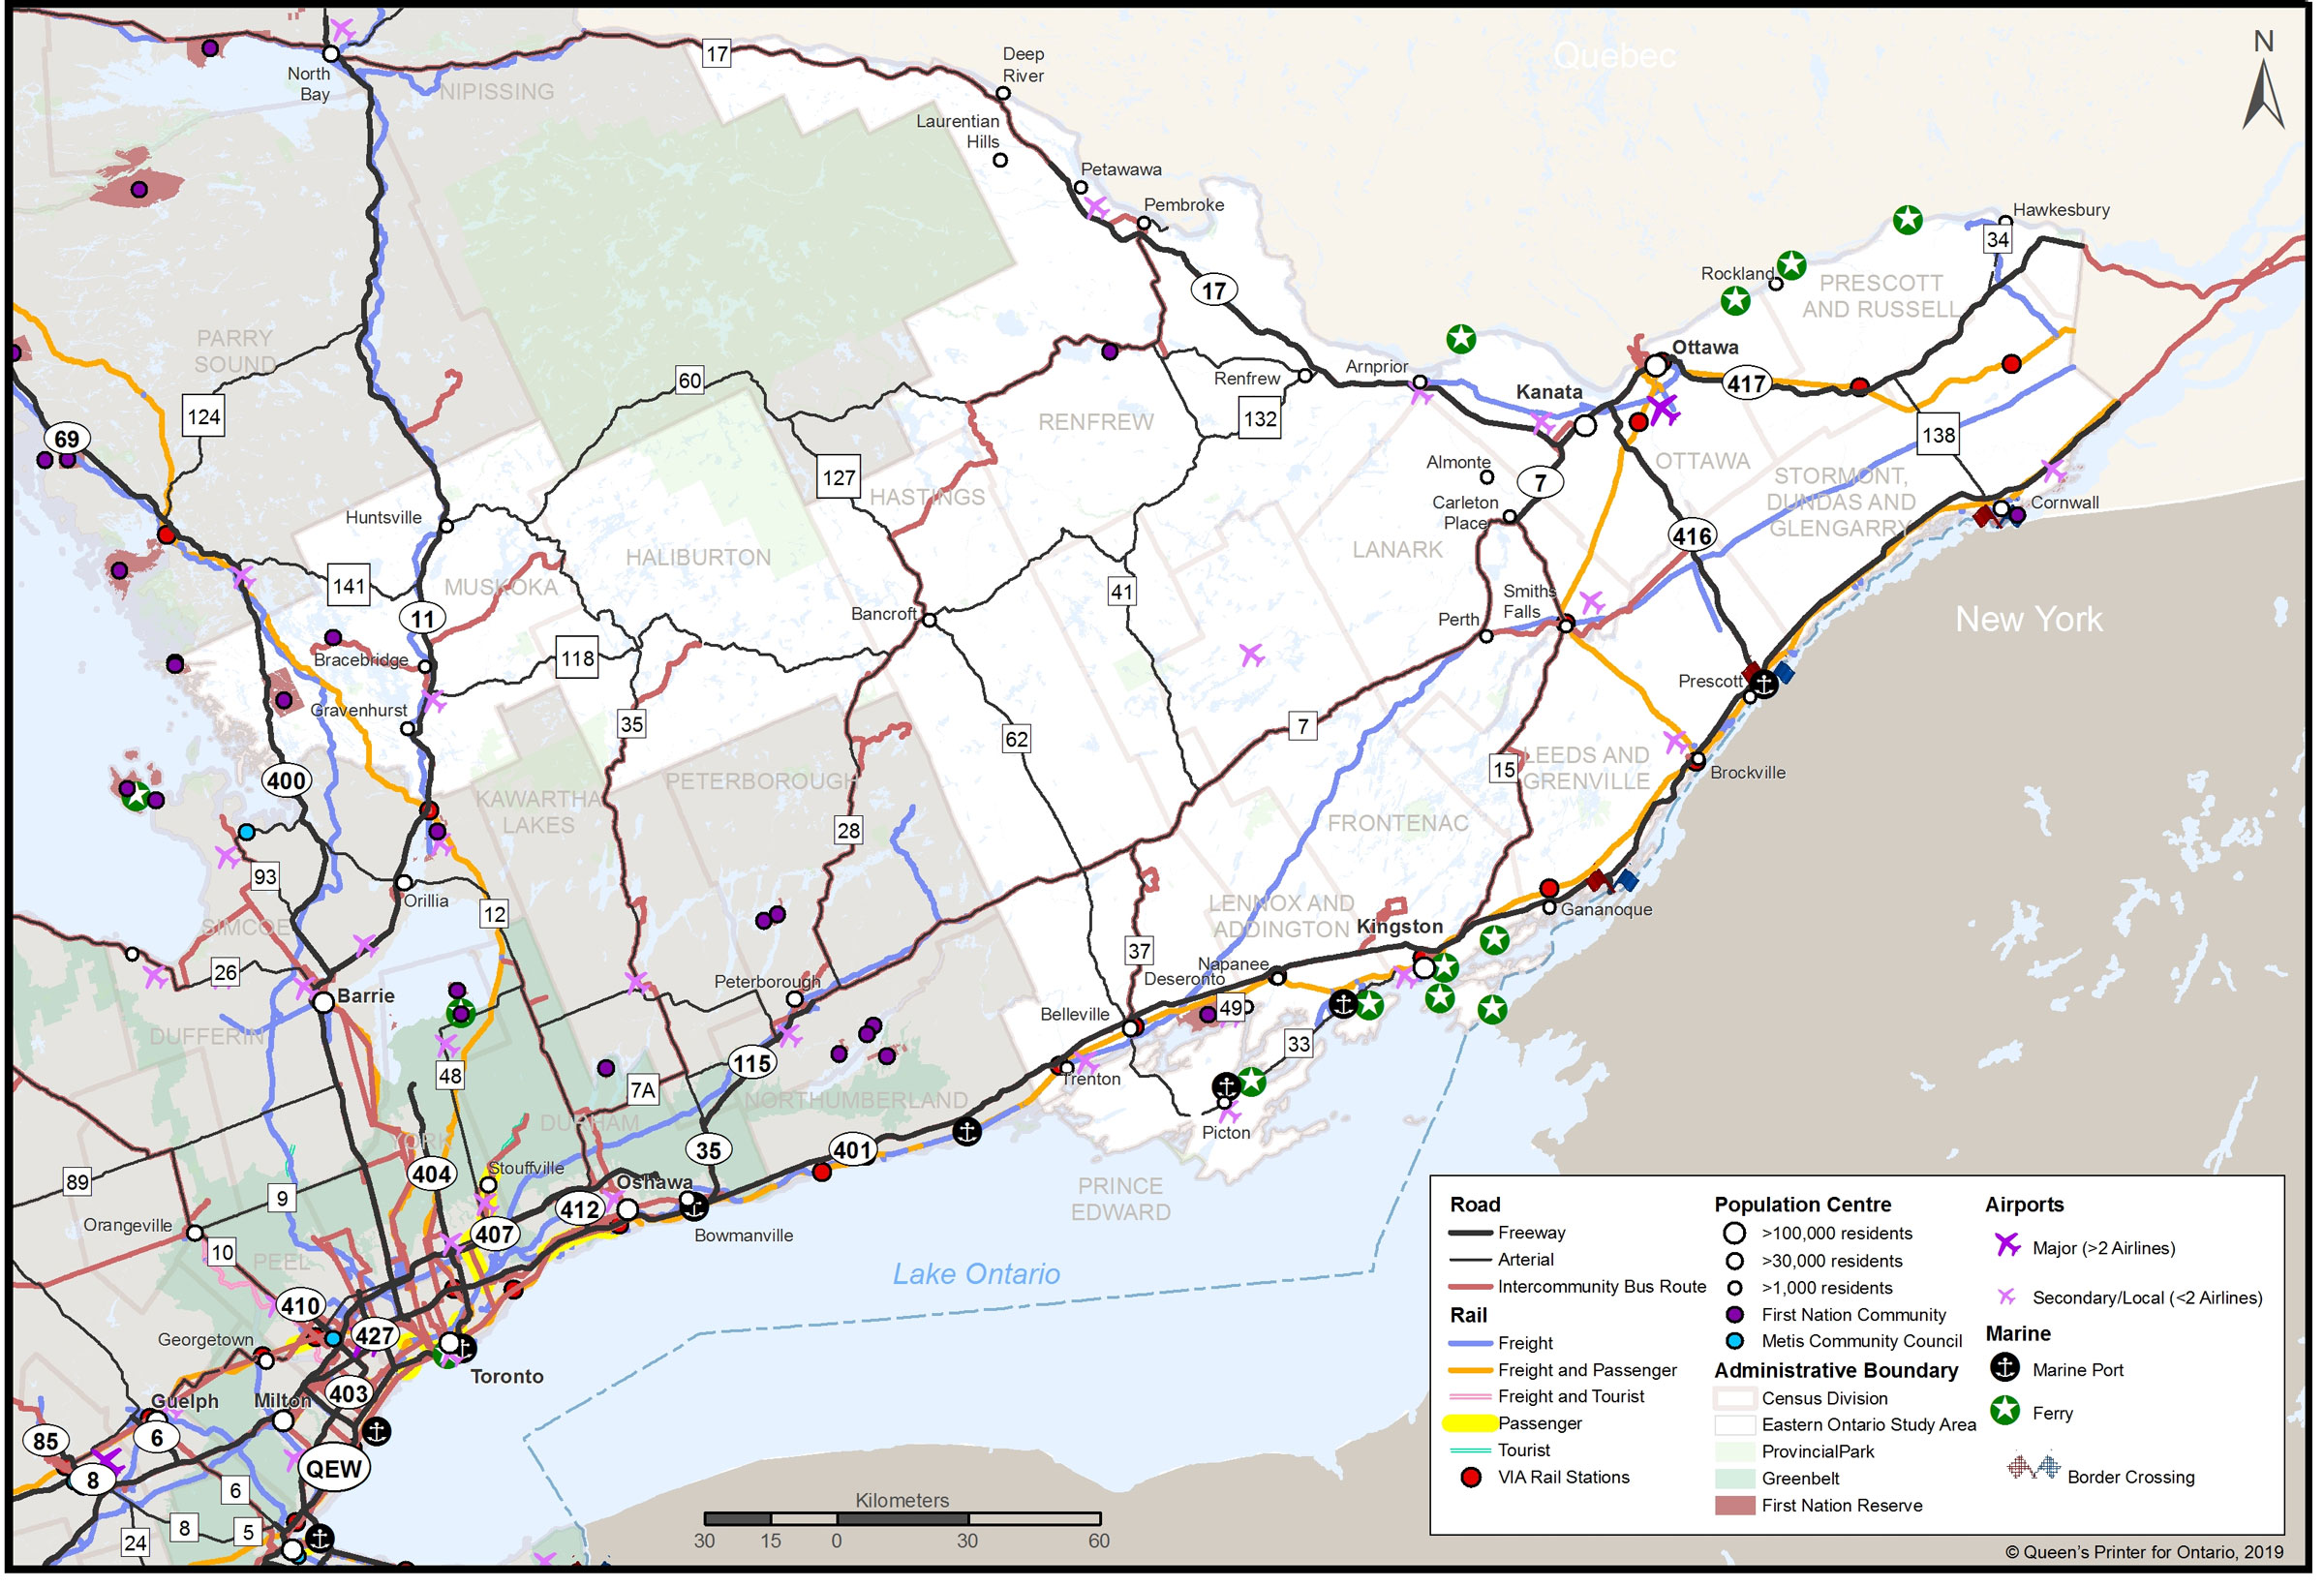 A map showing Eastern Ontario, including population centres, road and rail routes, airports and marine points.